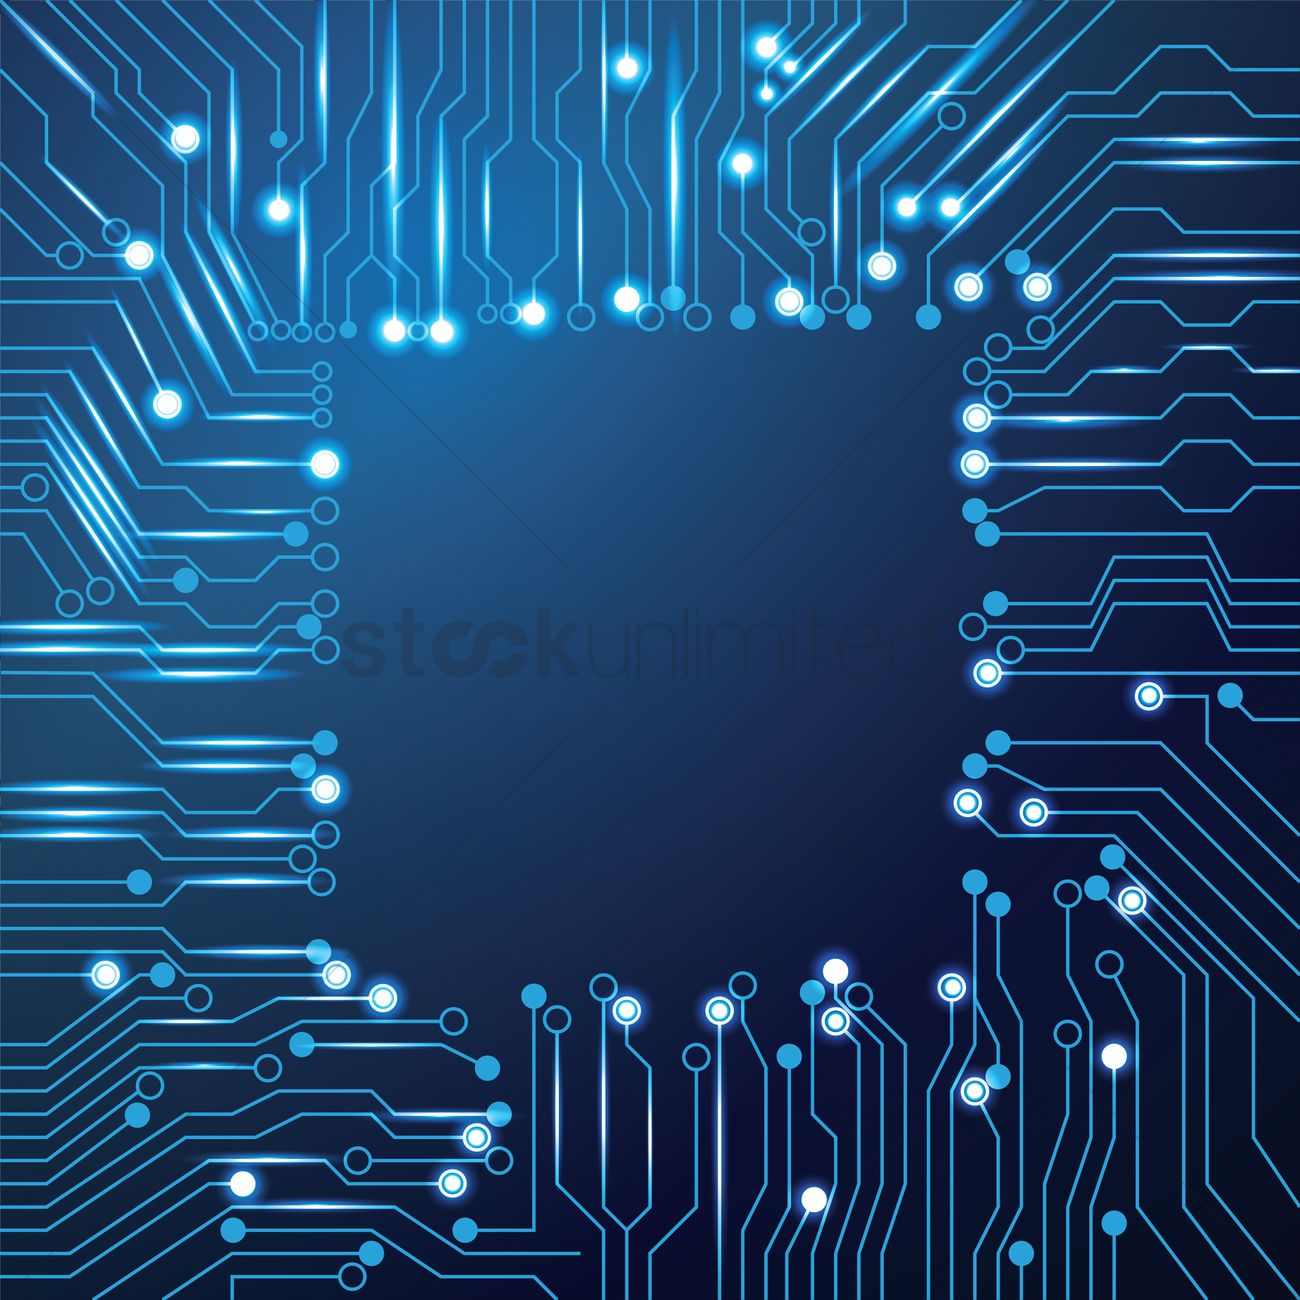 chip design on circuit board wallpaper vector graphic